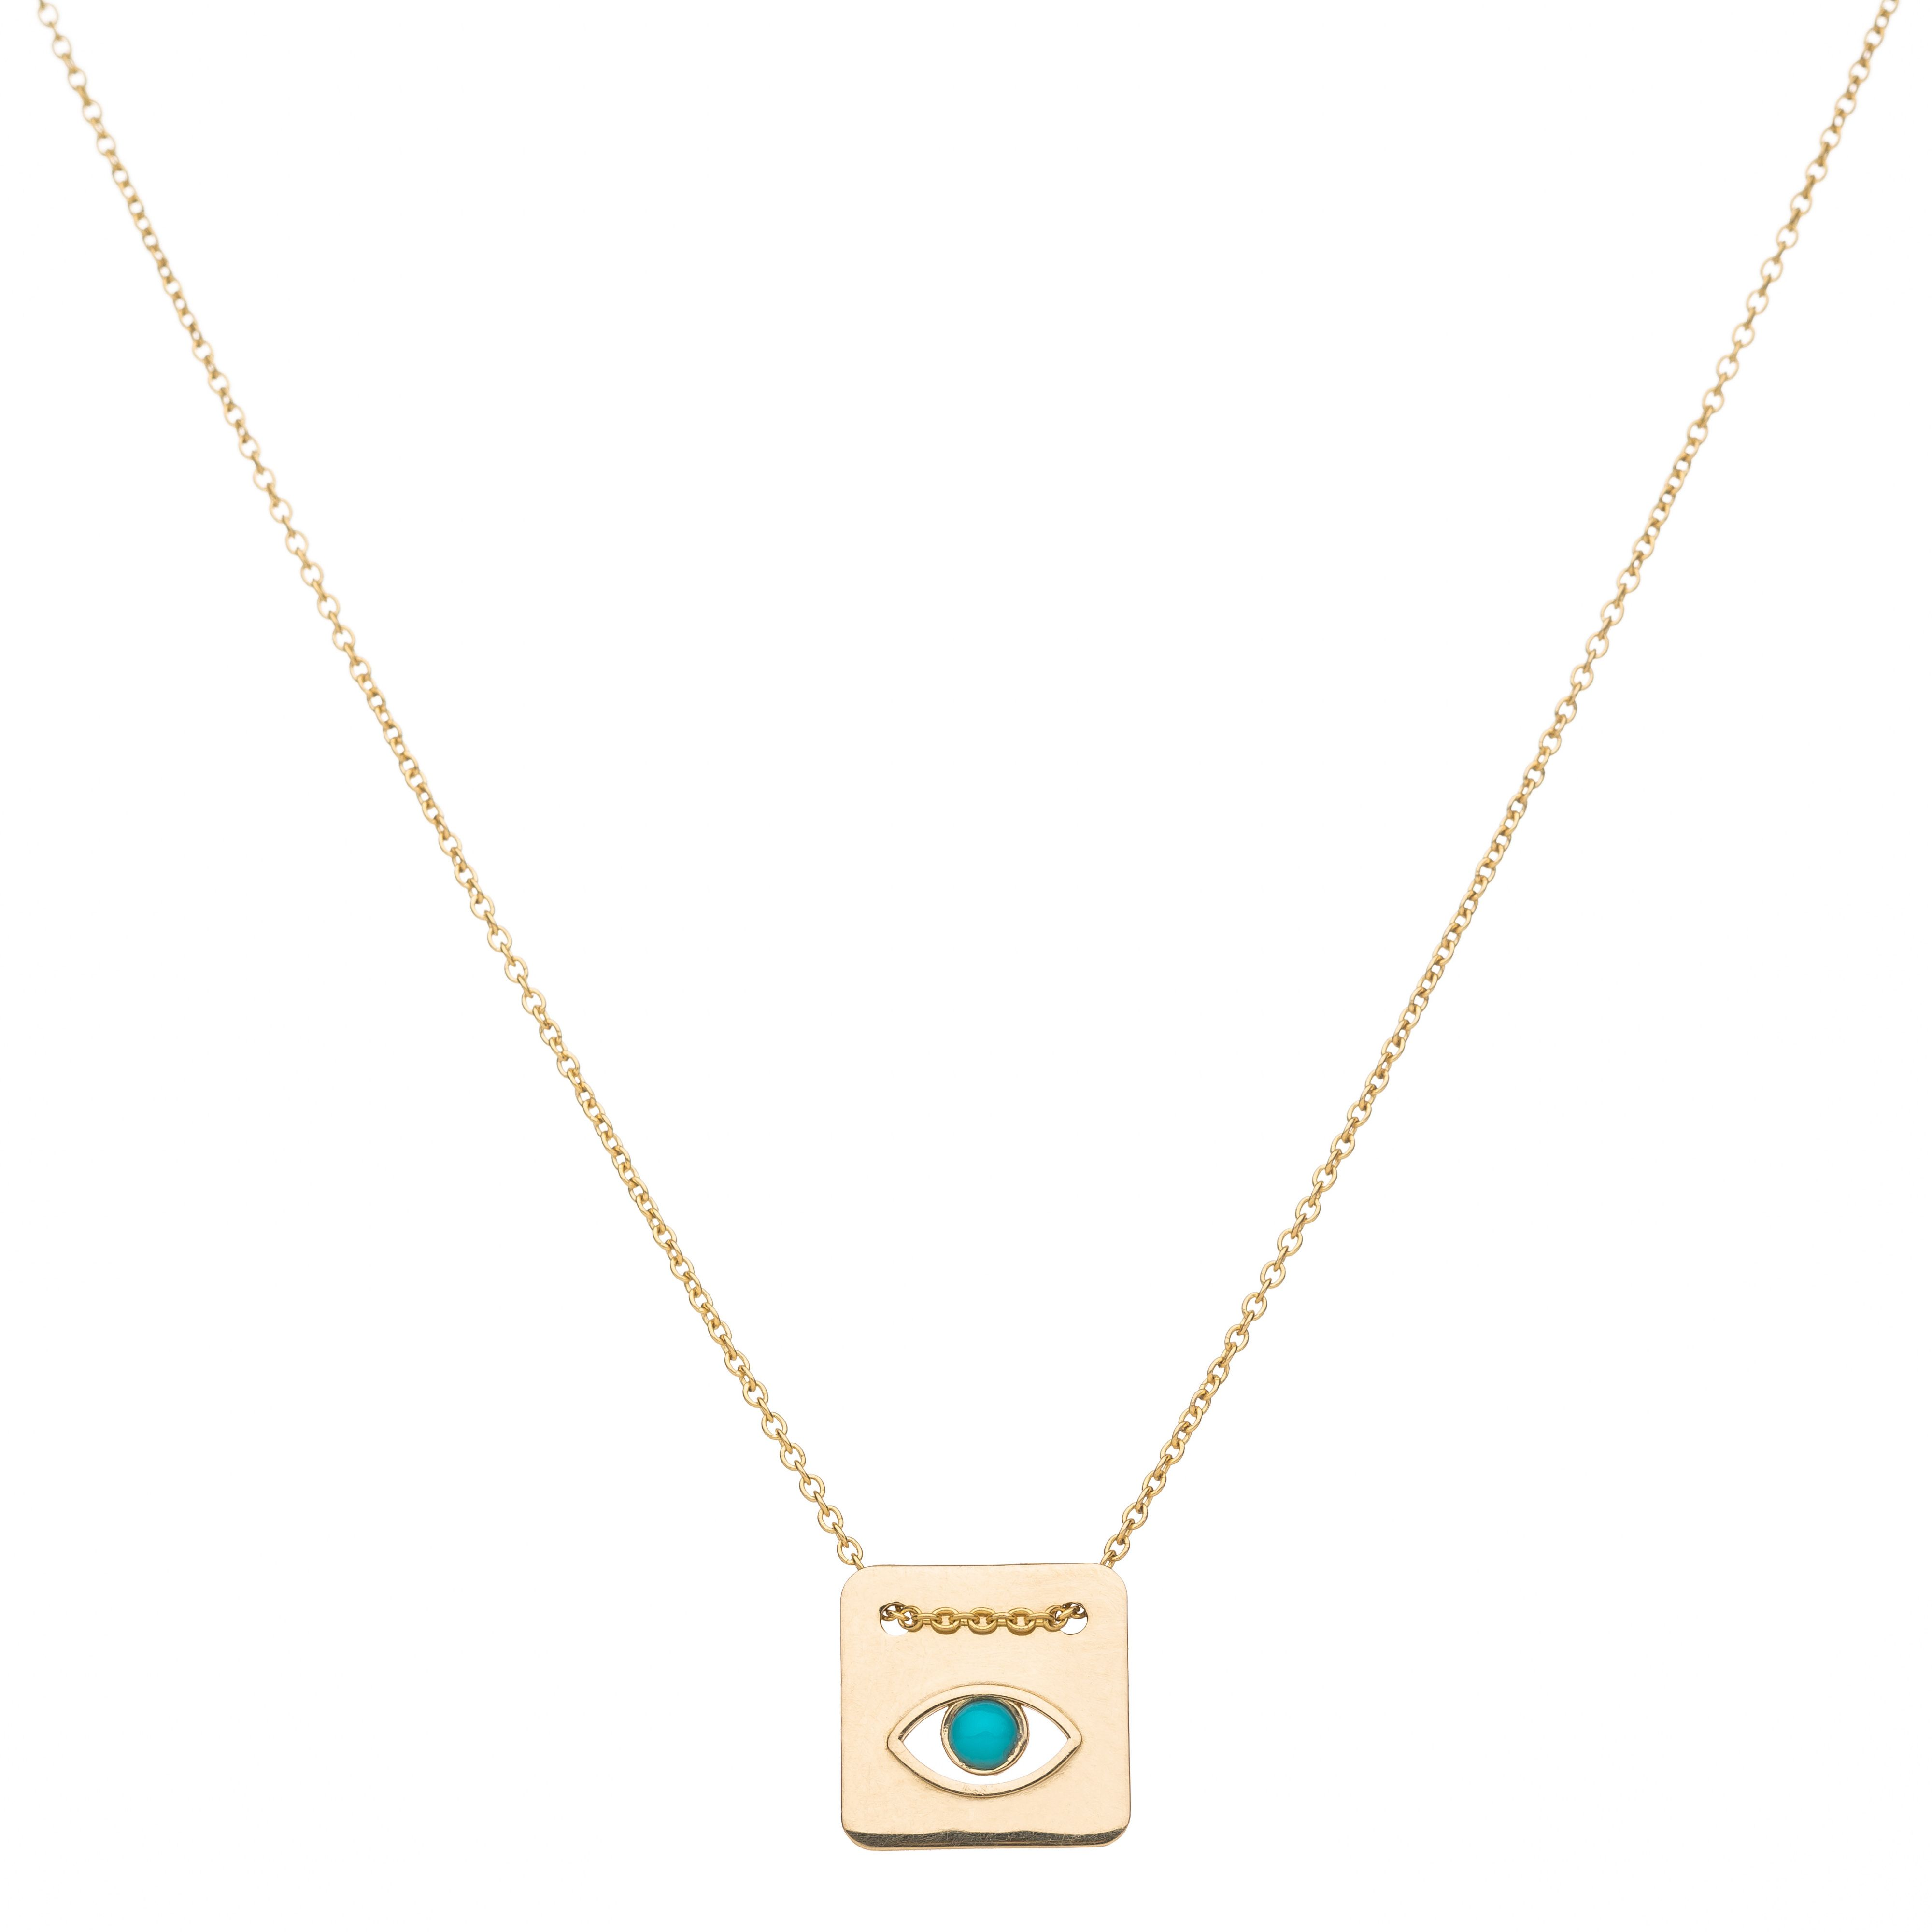 Lucky me k gold evil eye pendant set with a turquoise stone in